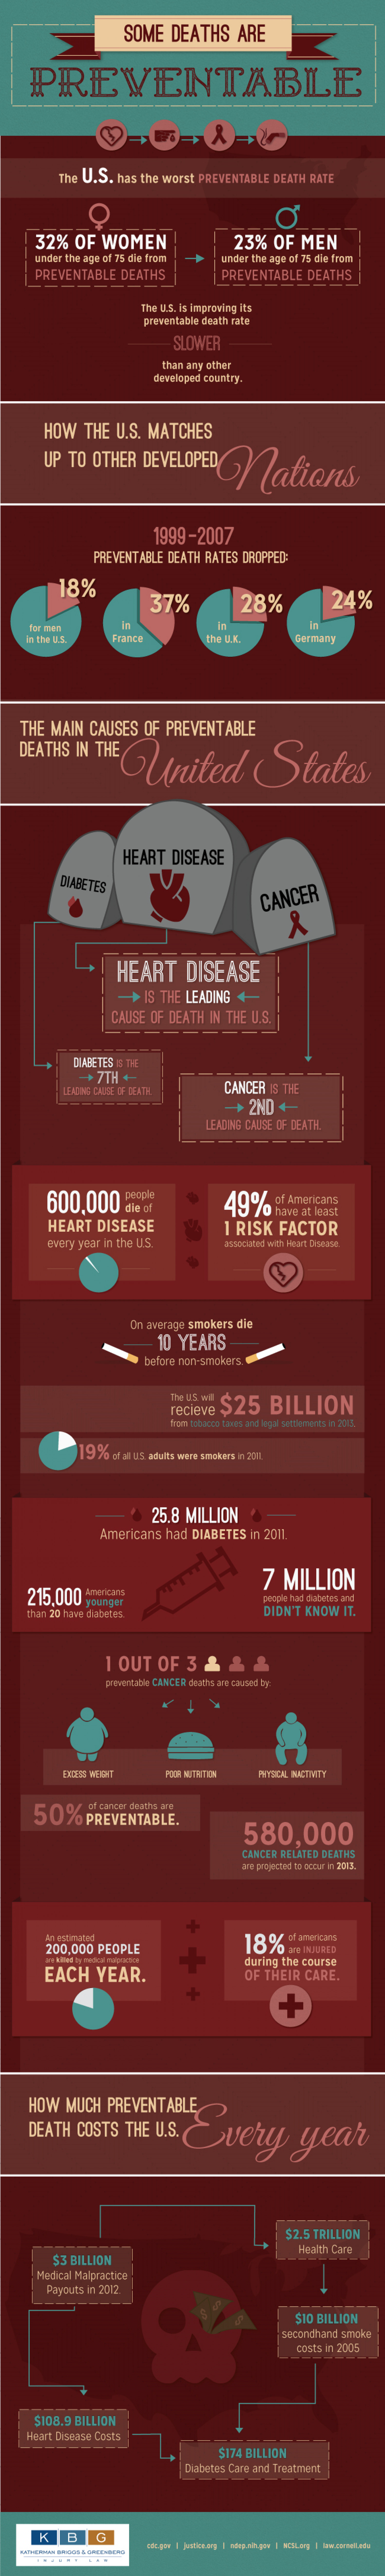 Some Deaths Are Preventable Infographic